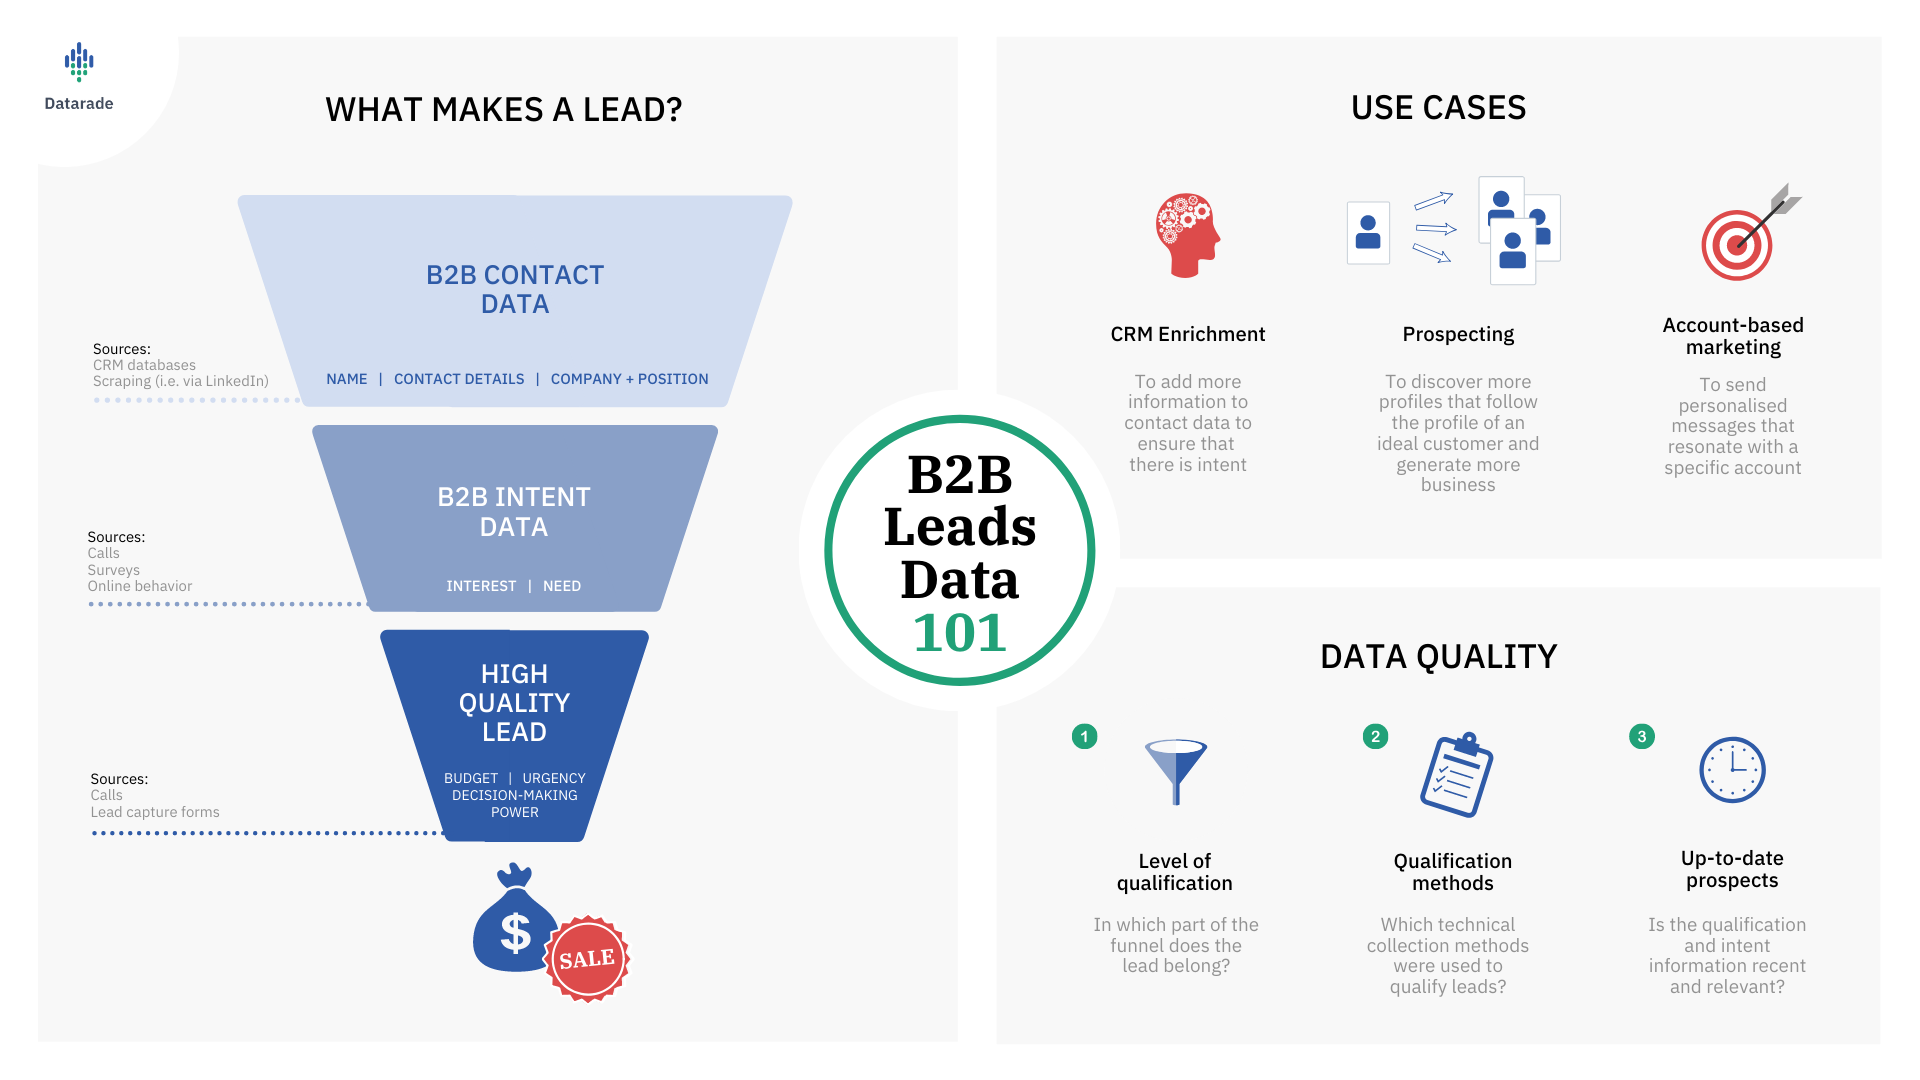 What is B2B Leads Data?